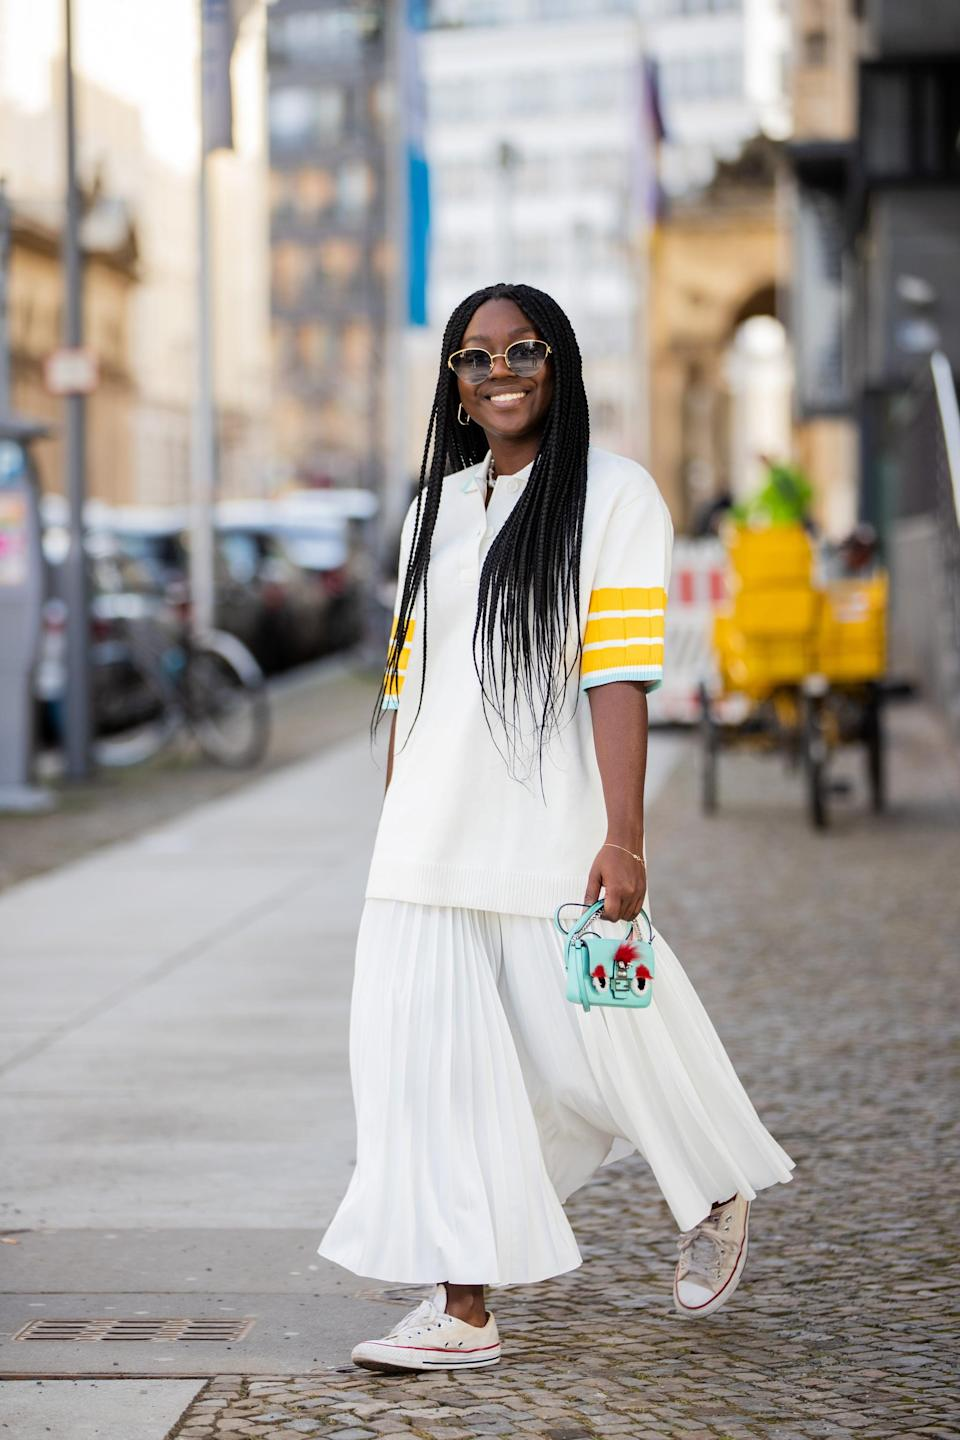 <p>I love this look because it's so playful and casual. Oversize skirts and tees pair really well together in the same colors. Pro tip: add a bright mini bag and shades to balance a casual Converse sneaker.</p>